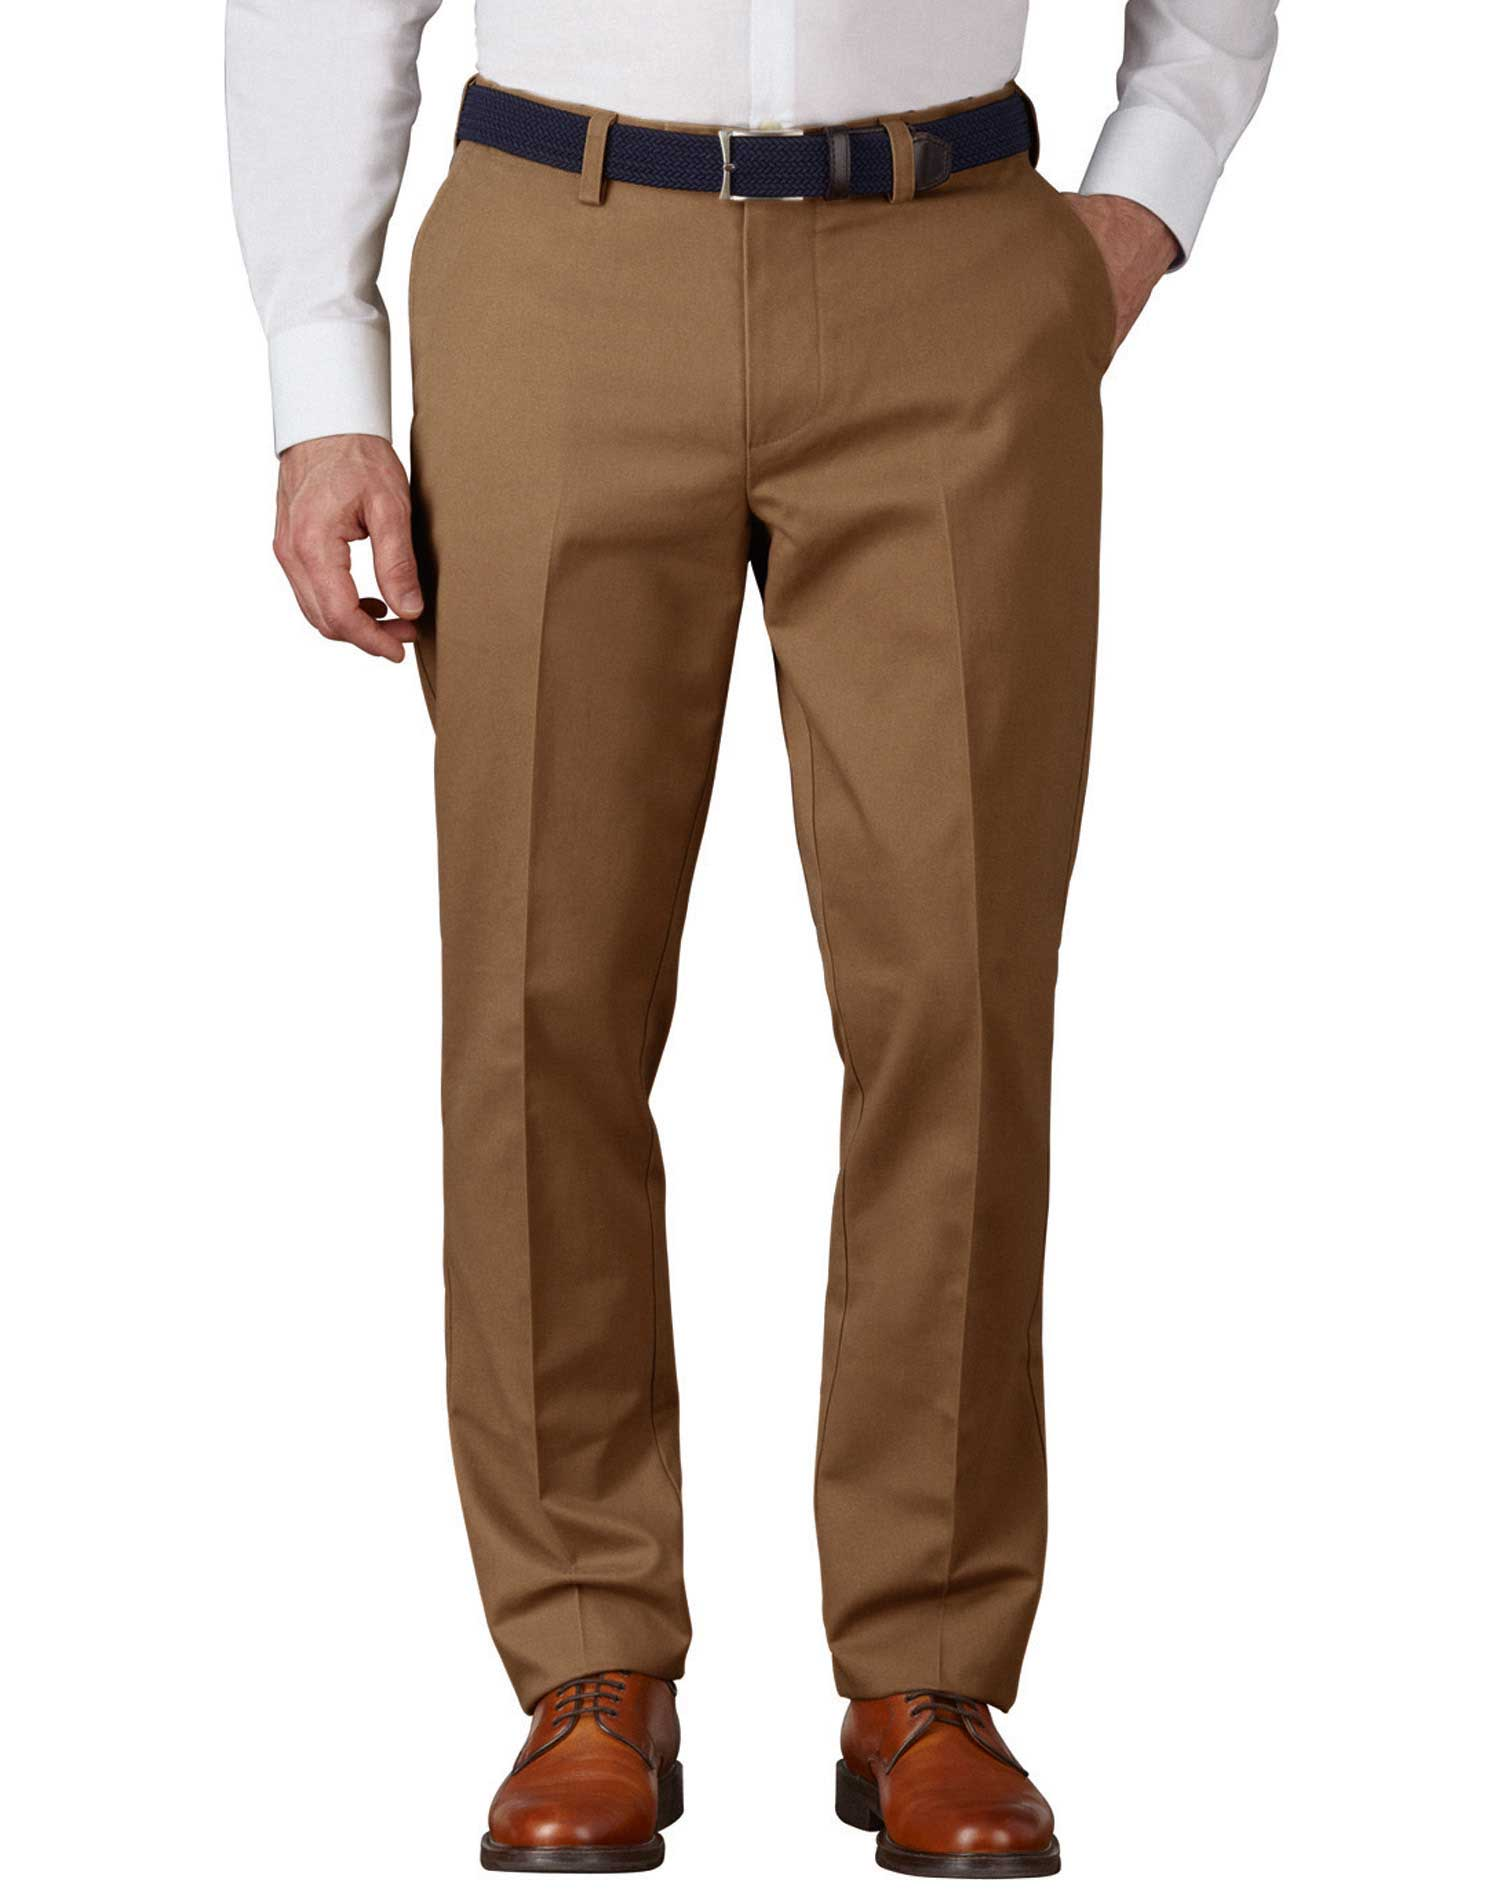 Camel Extra Slim Fit Flat Front Non-Iron Cotton Chino Trousers Size W34 L34 by Charles Tyrwhitt